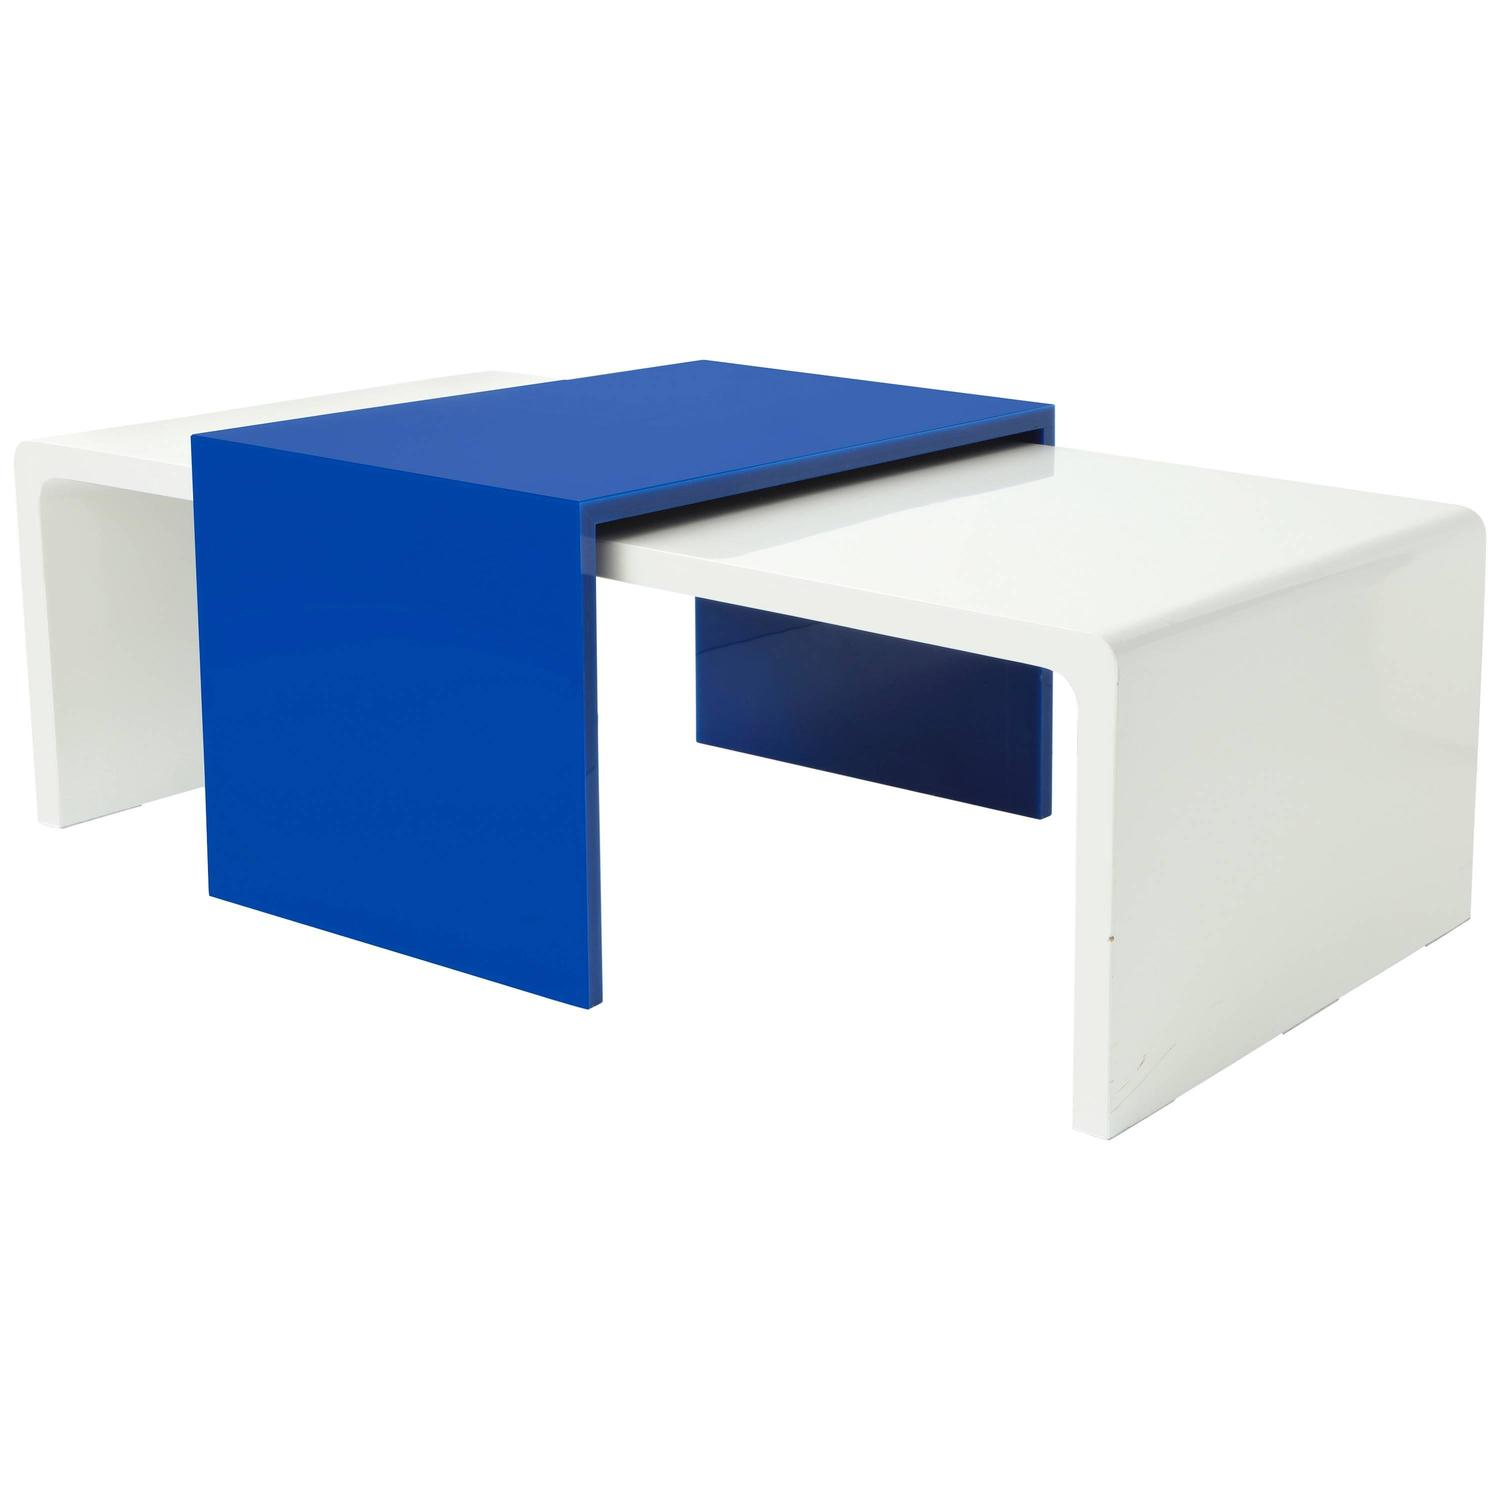 Azul and white acrylic coffee table for sale at 1stdibs for Acrylic coffee tables for sale